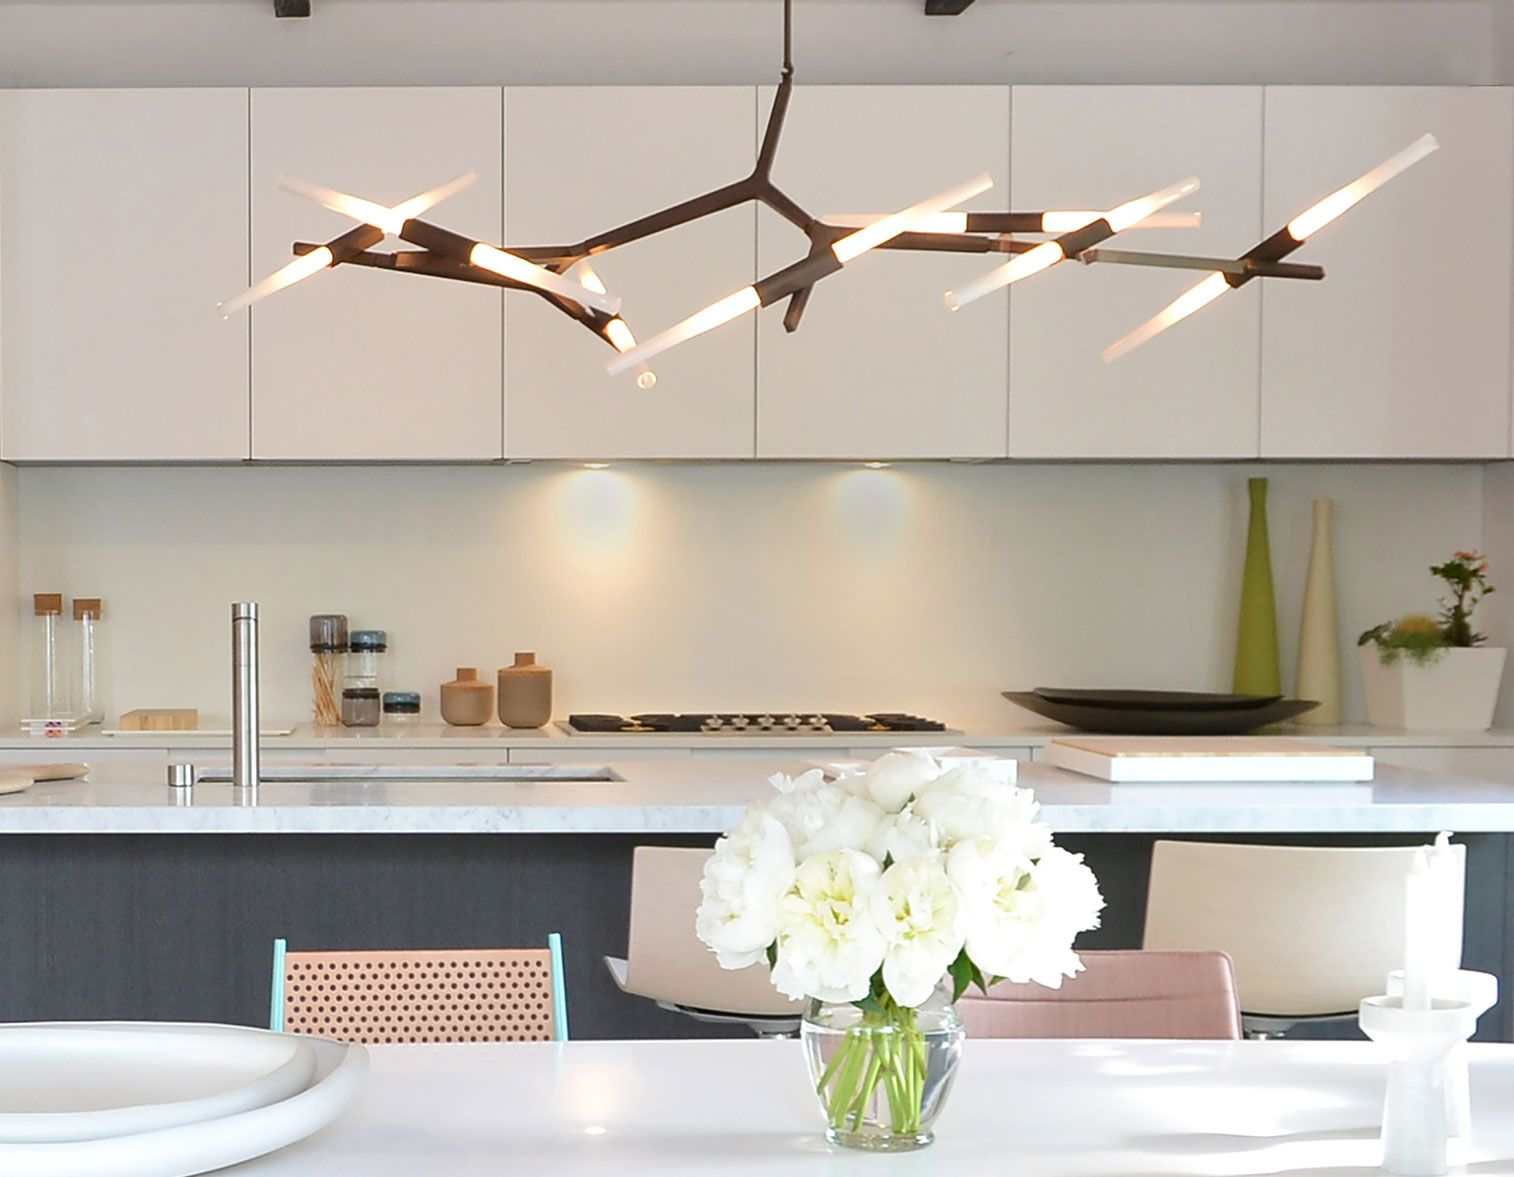 Interior lighting fixtures - Agnes Chandelier With 14 Bulbs In Bronze Shown At West Out East Retail Showroominterior Beach Lightinginterior